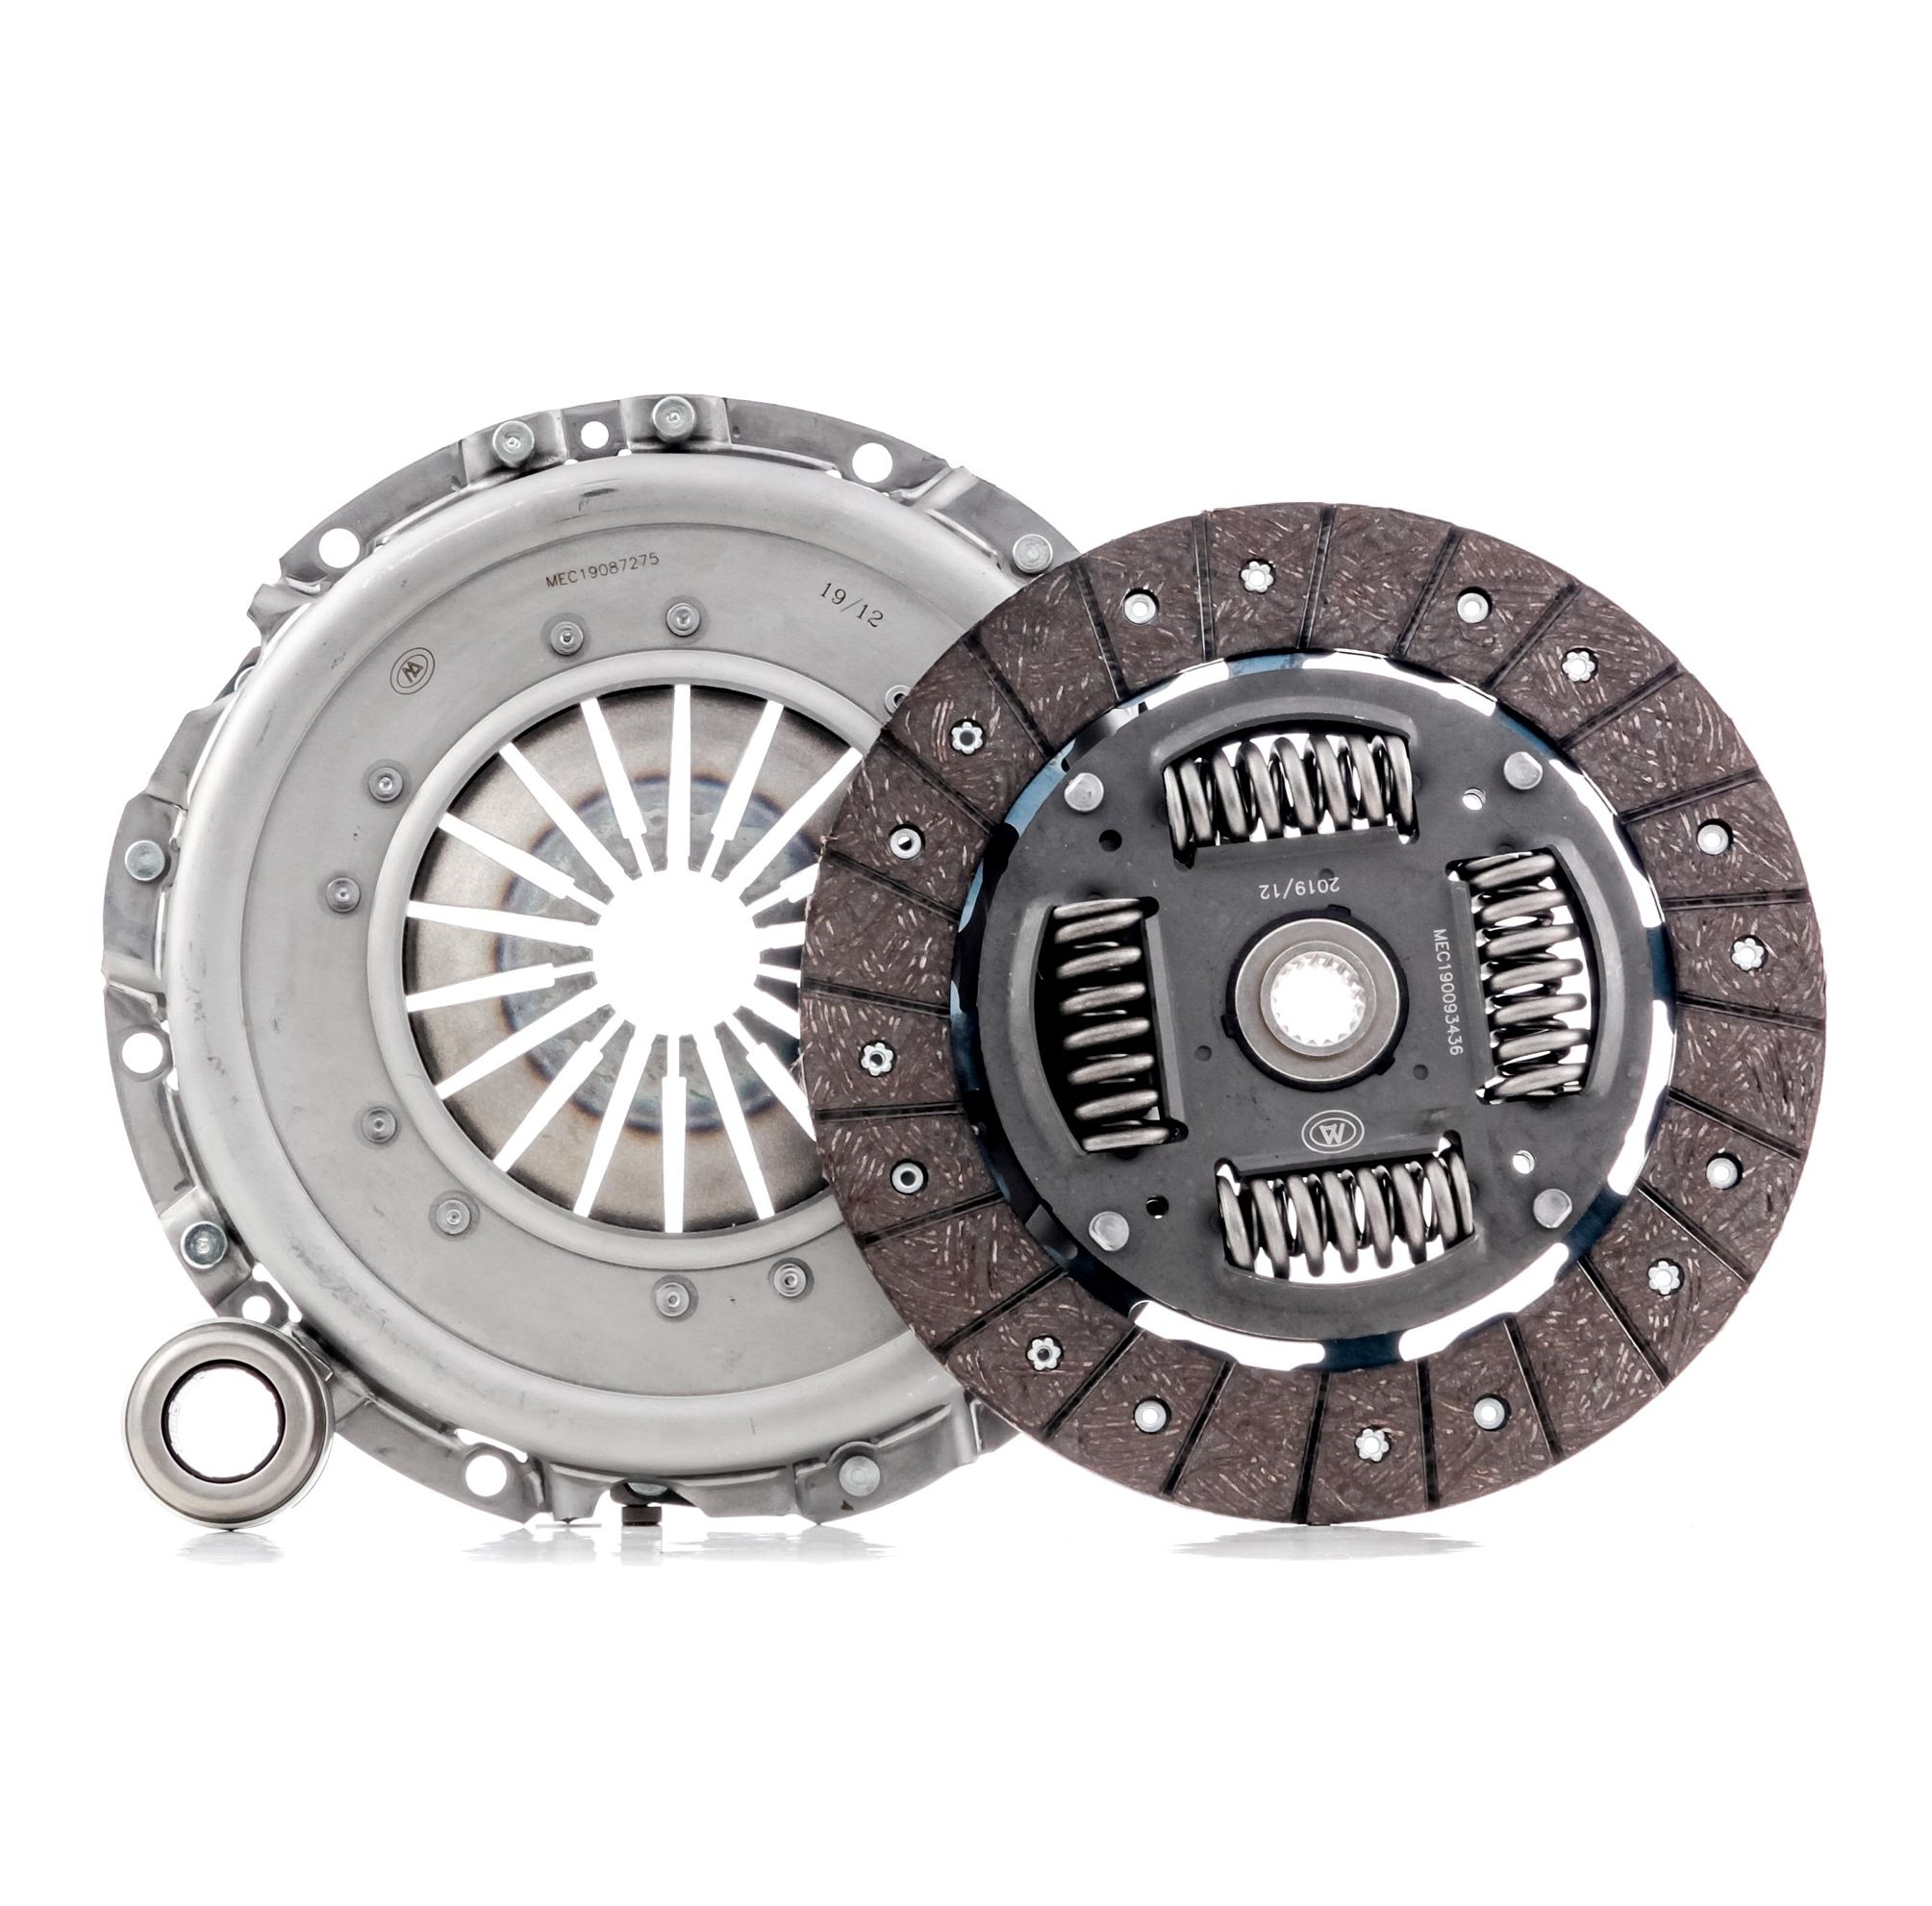 Clutch kit MK10231 MECARM — only new parts